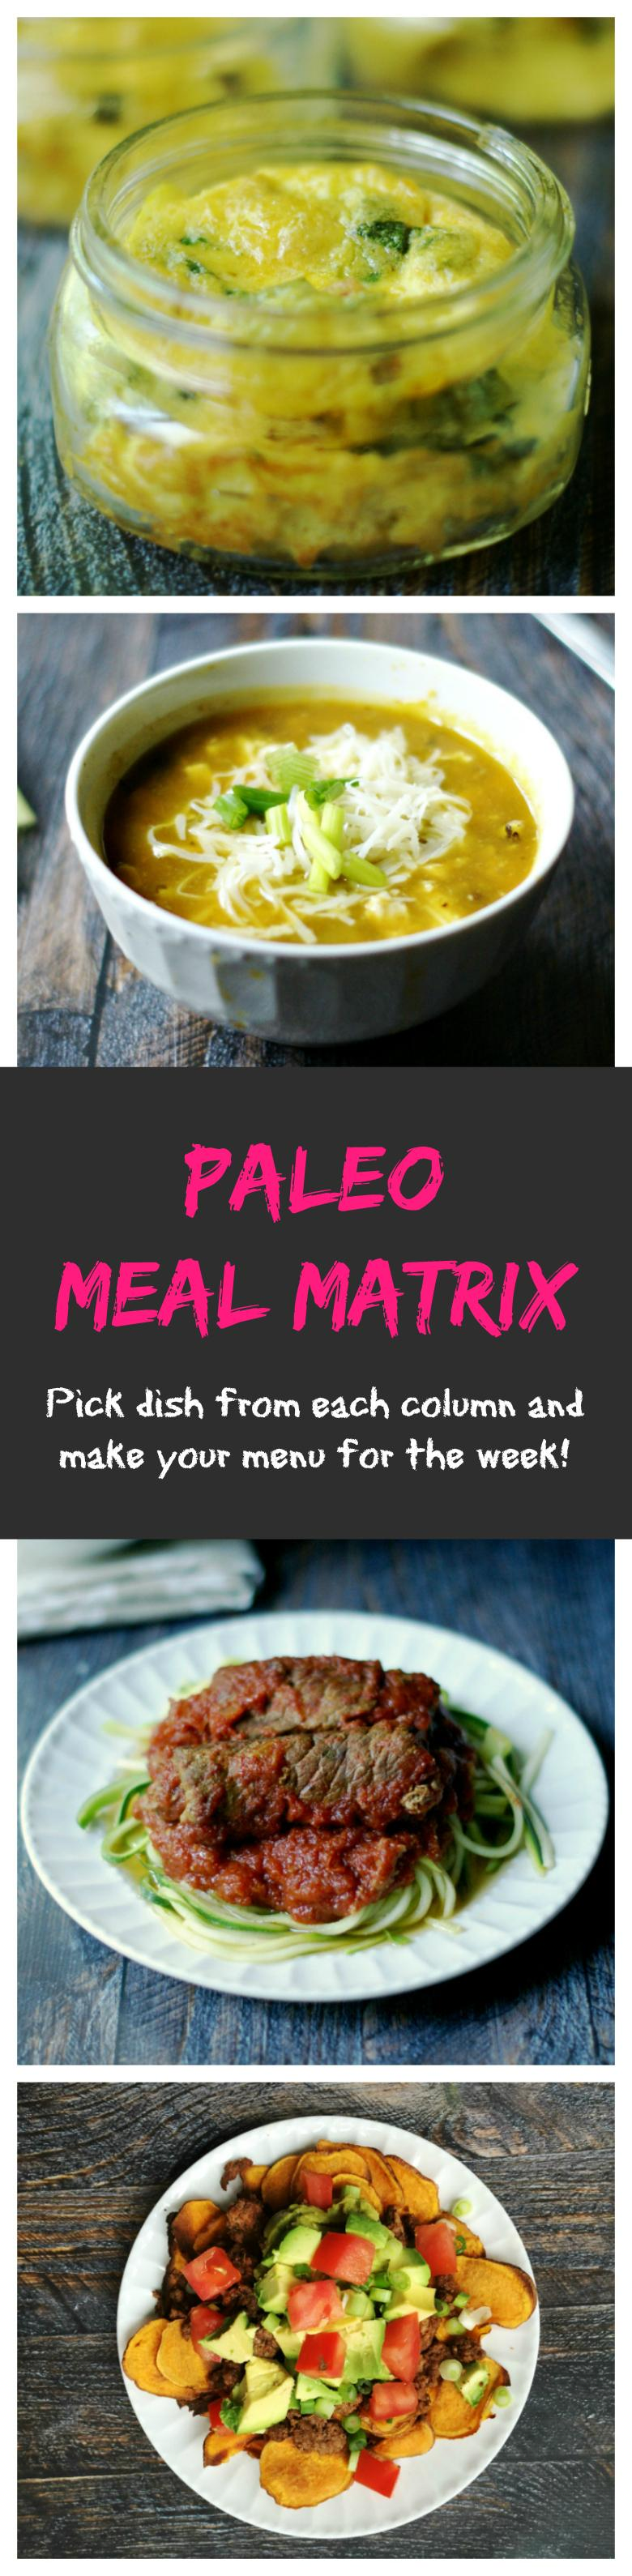 This Paleo Meal Matrix makes planning your meals easy. Just pick a dish from each column to plan your menu for the day. Click on the link for the recipe. Easy peasy.